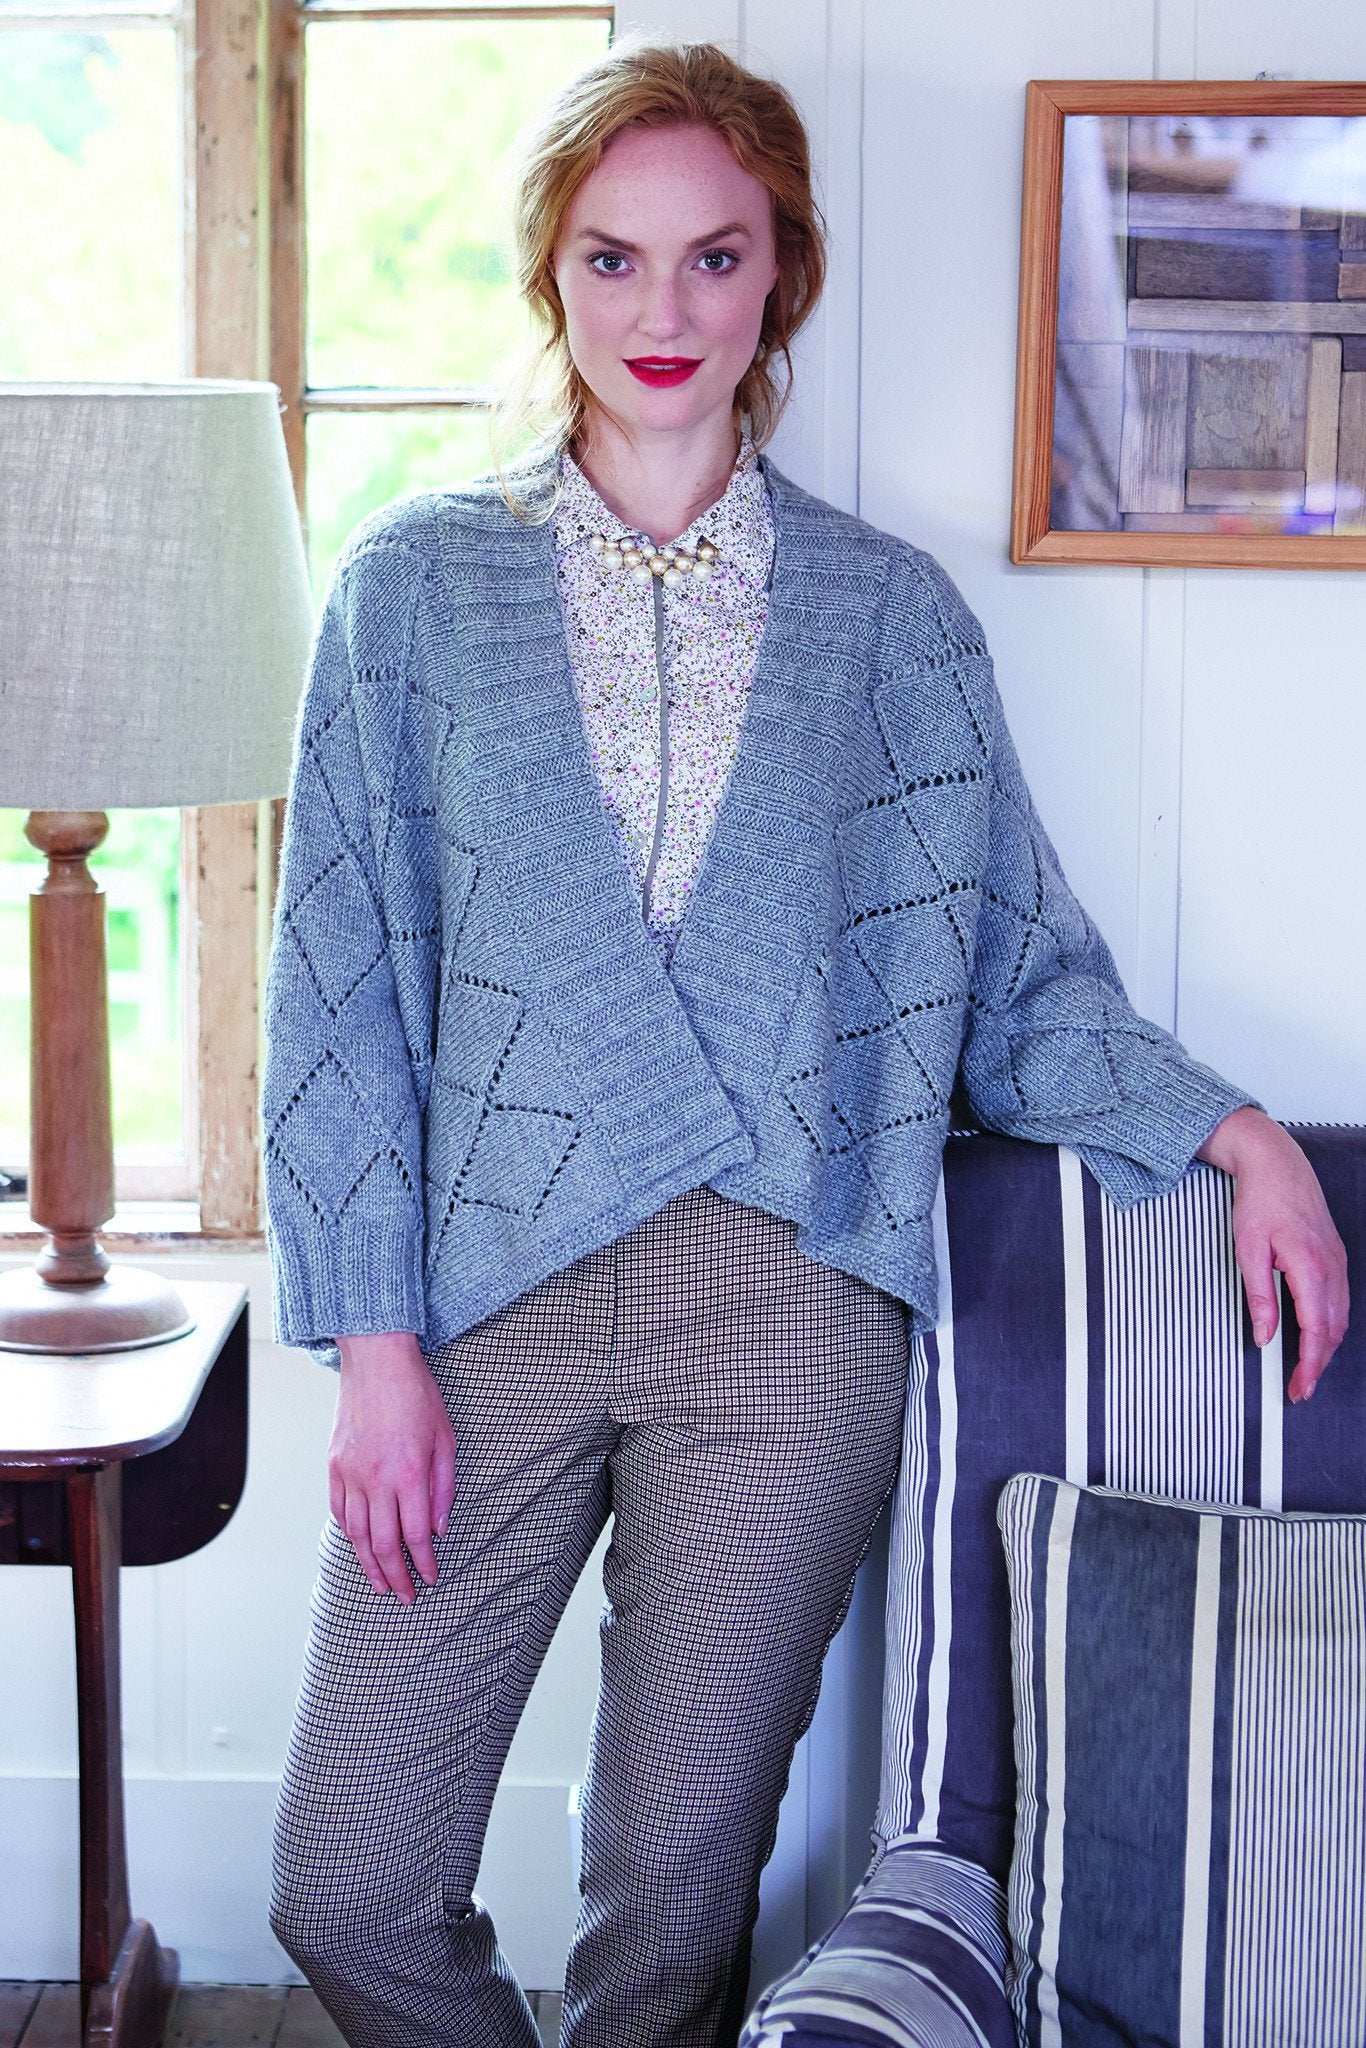 Ladies Lace Poncho Knitting Pattern – The Knitting Network